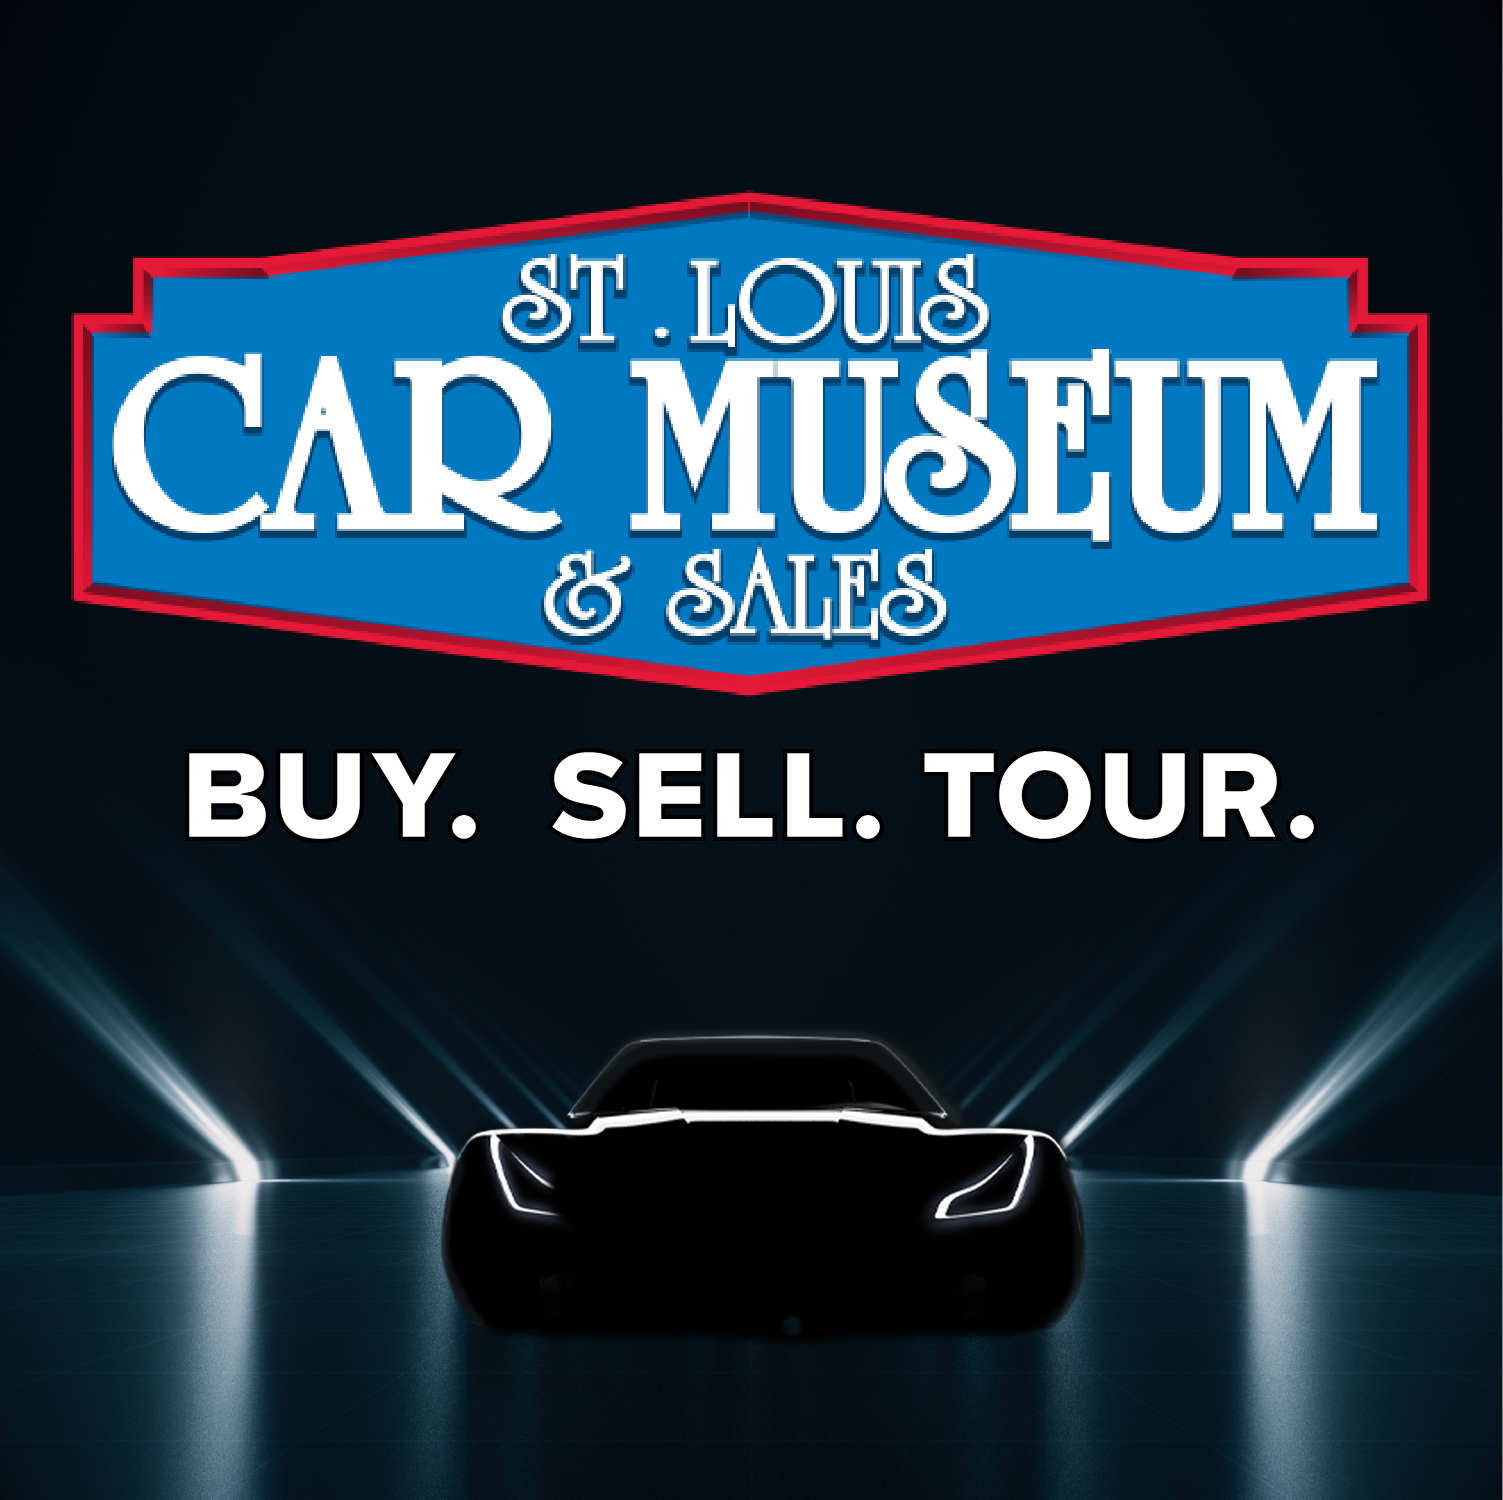 St. Louis Car Museum